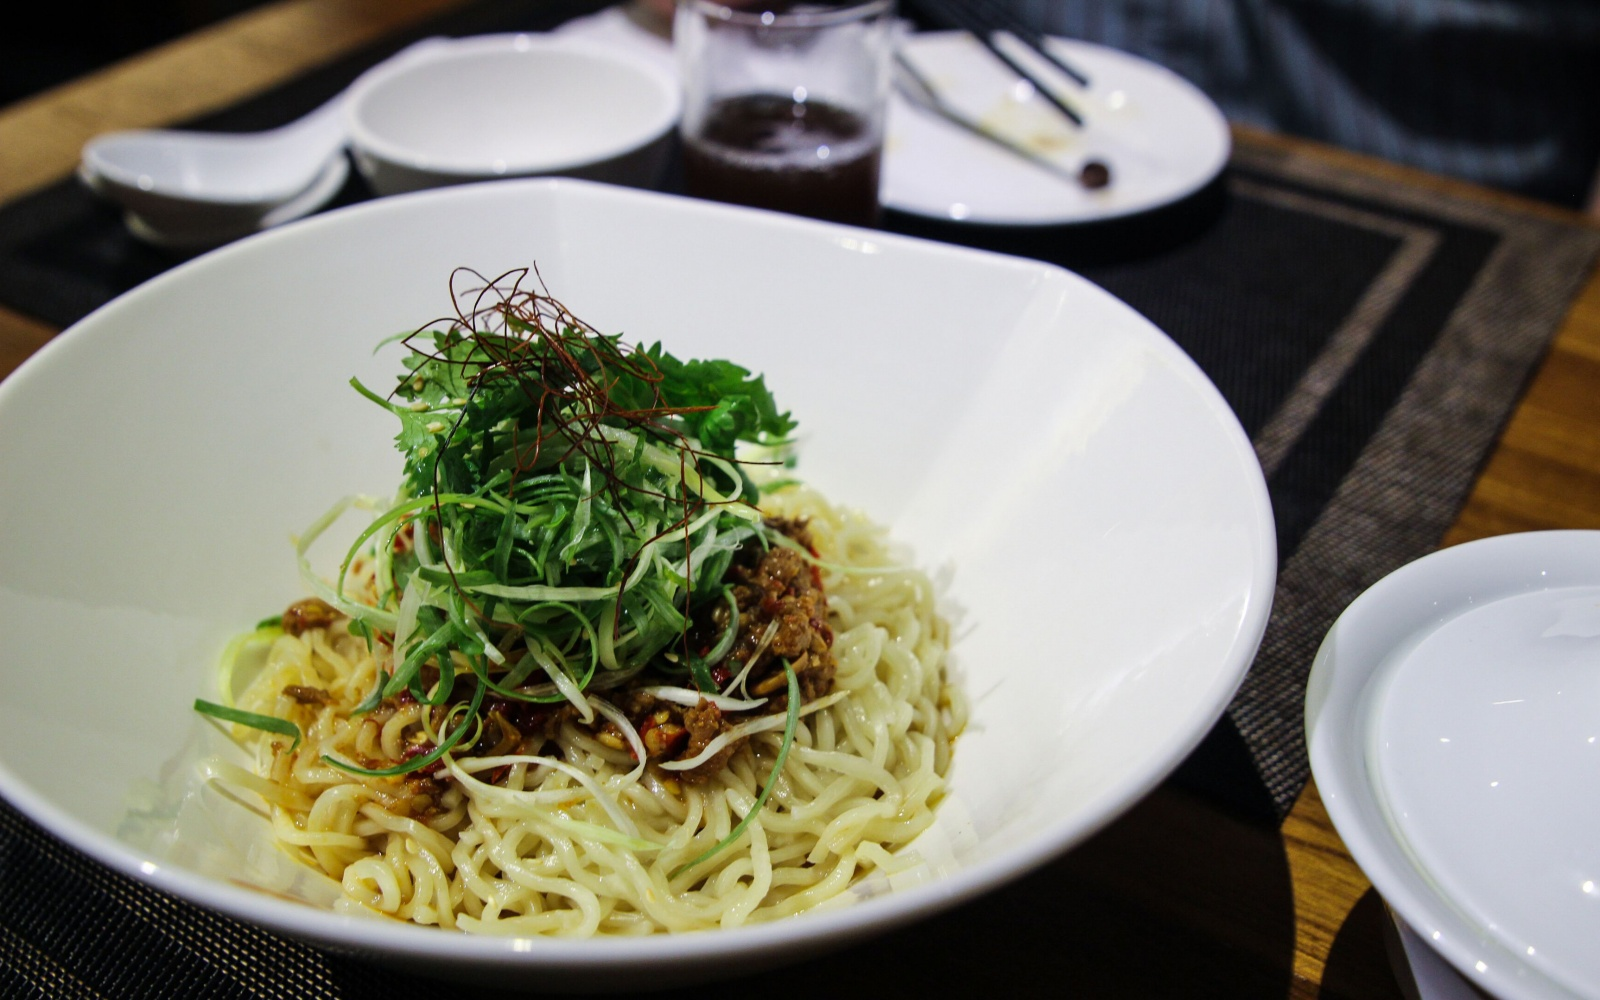 Taiwanese Takeout: Noodles